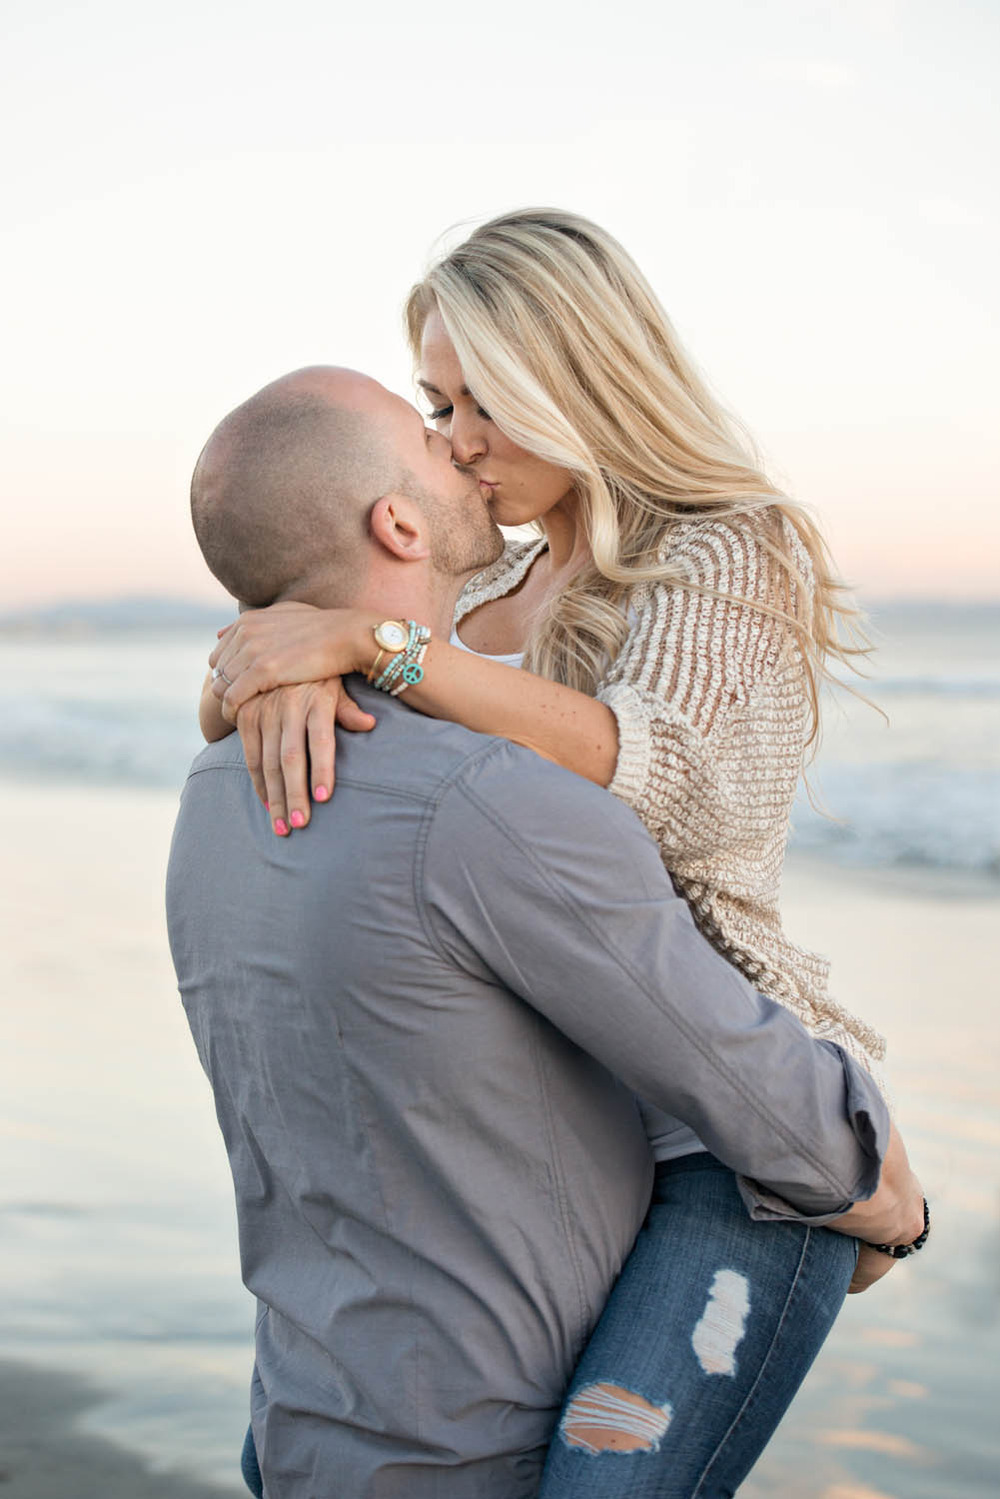 beach-engagement-photos-ian-andrew-photography-068.jpg